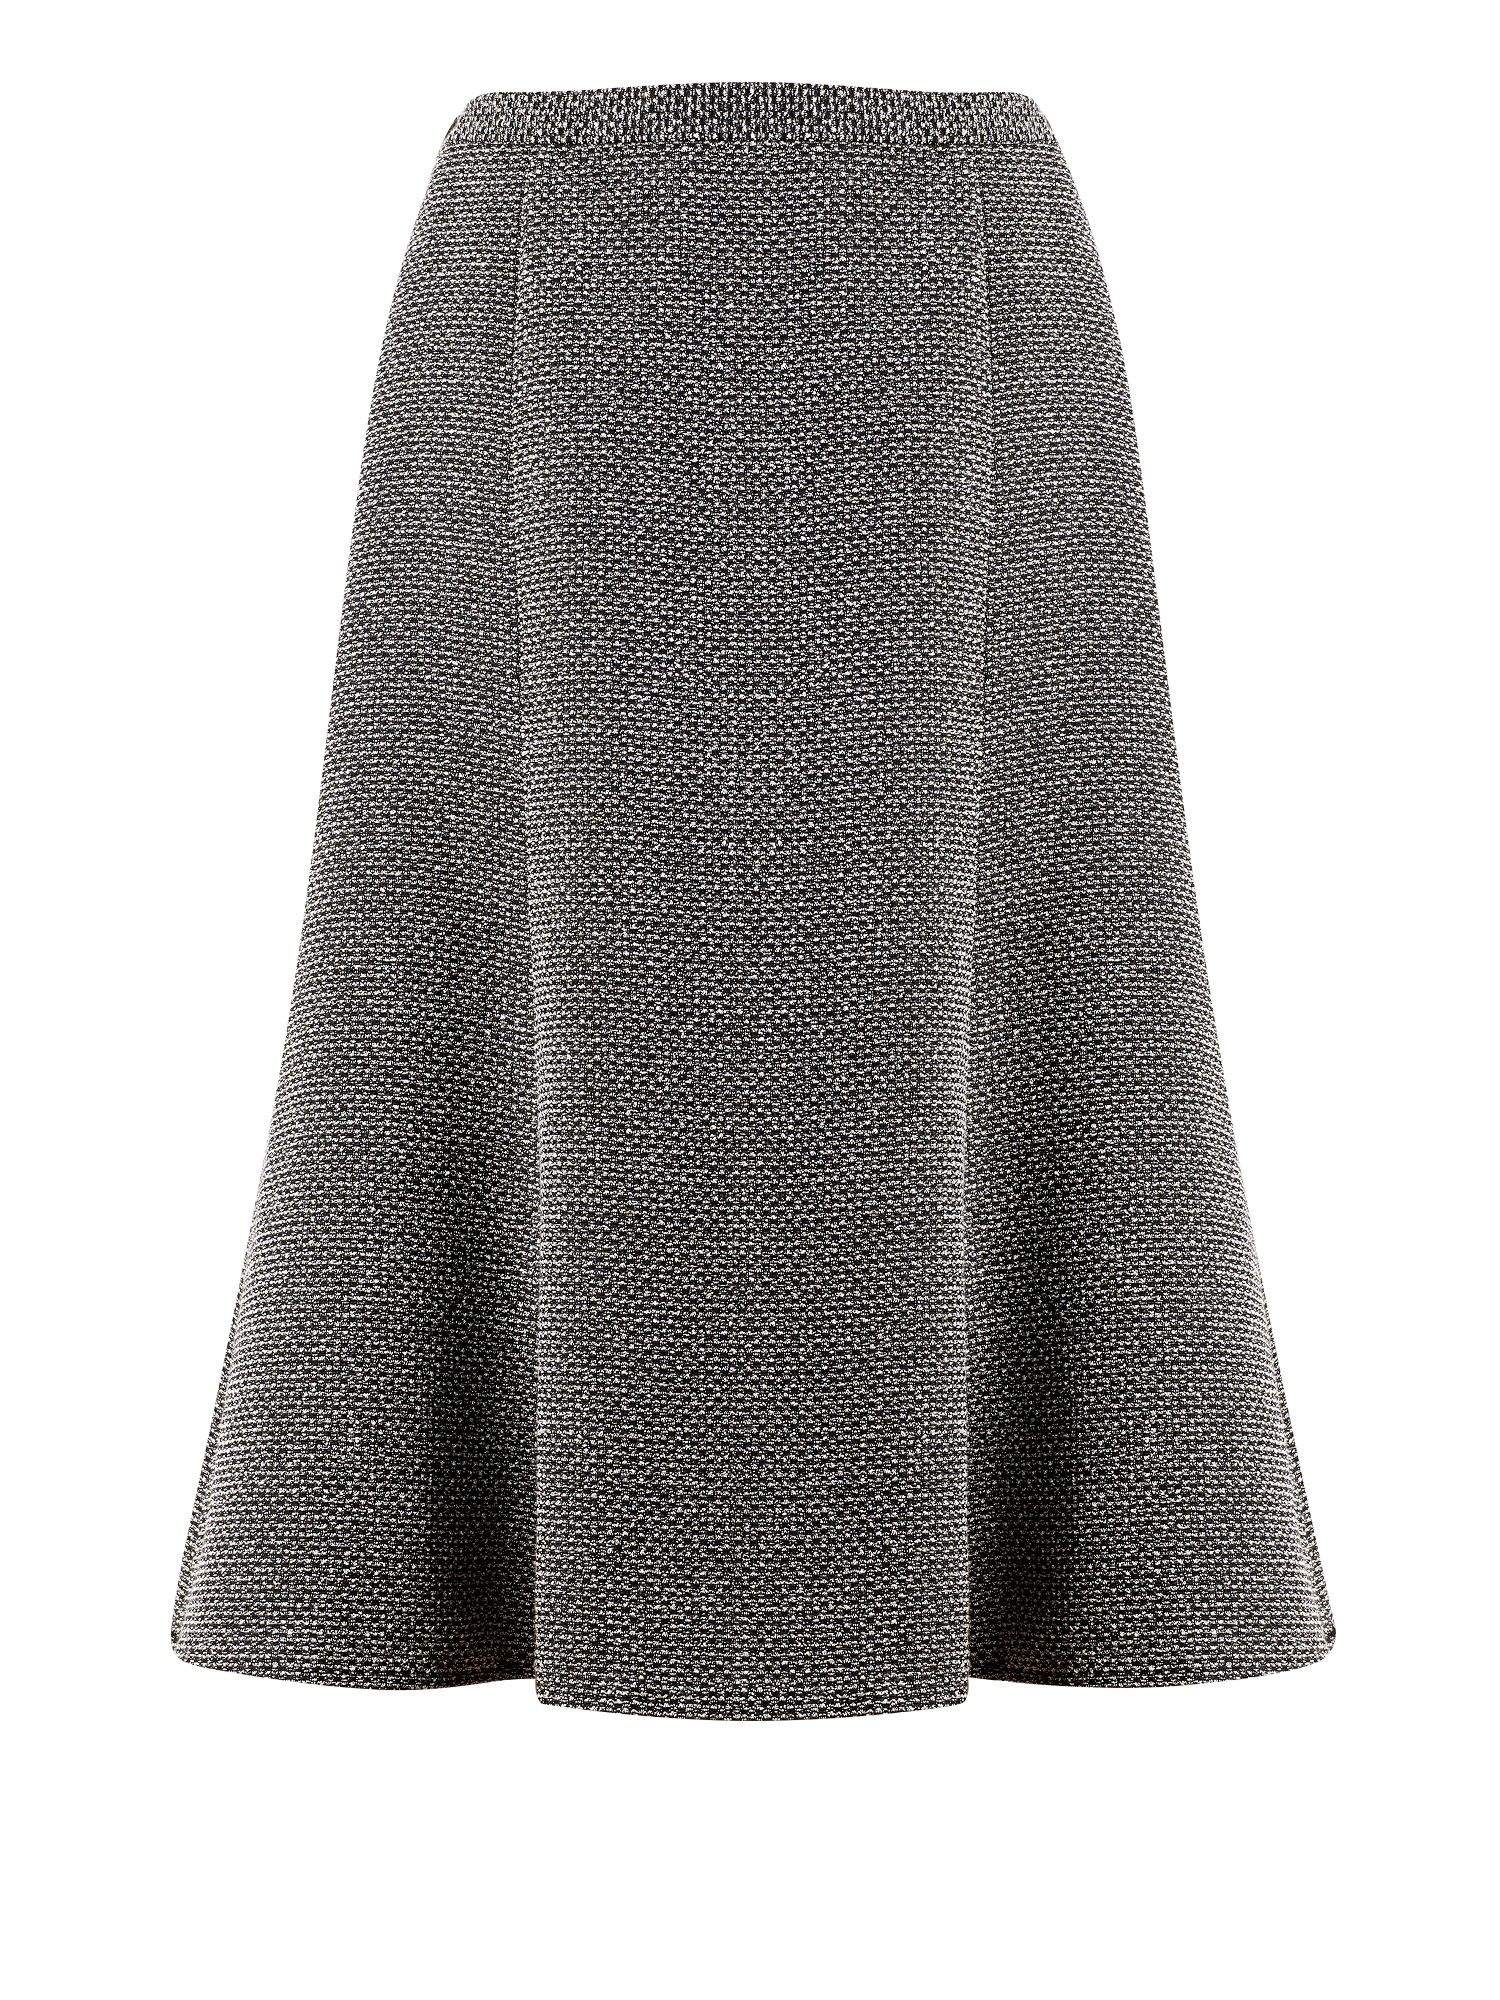 Salt and pepper skirt